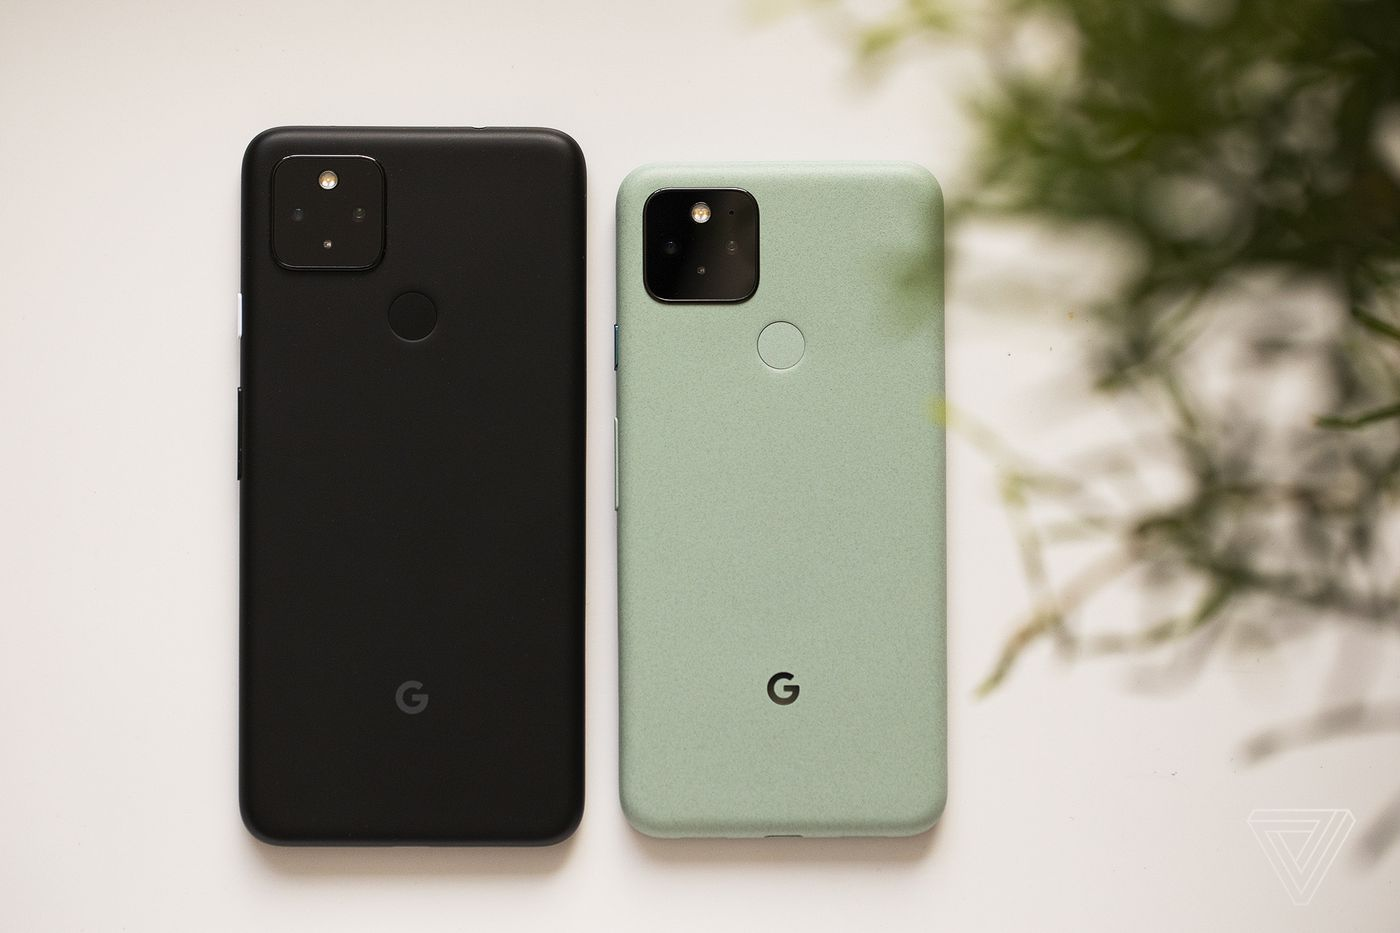 Cyber Monday Deals On Phones Save On The Google Pixel 5 Samsung Galaxy S20 Oneplus 8 And More The Verge